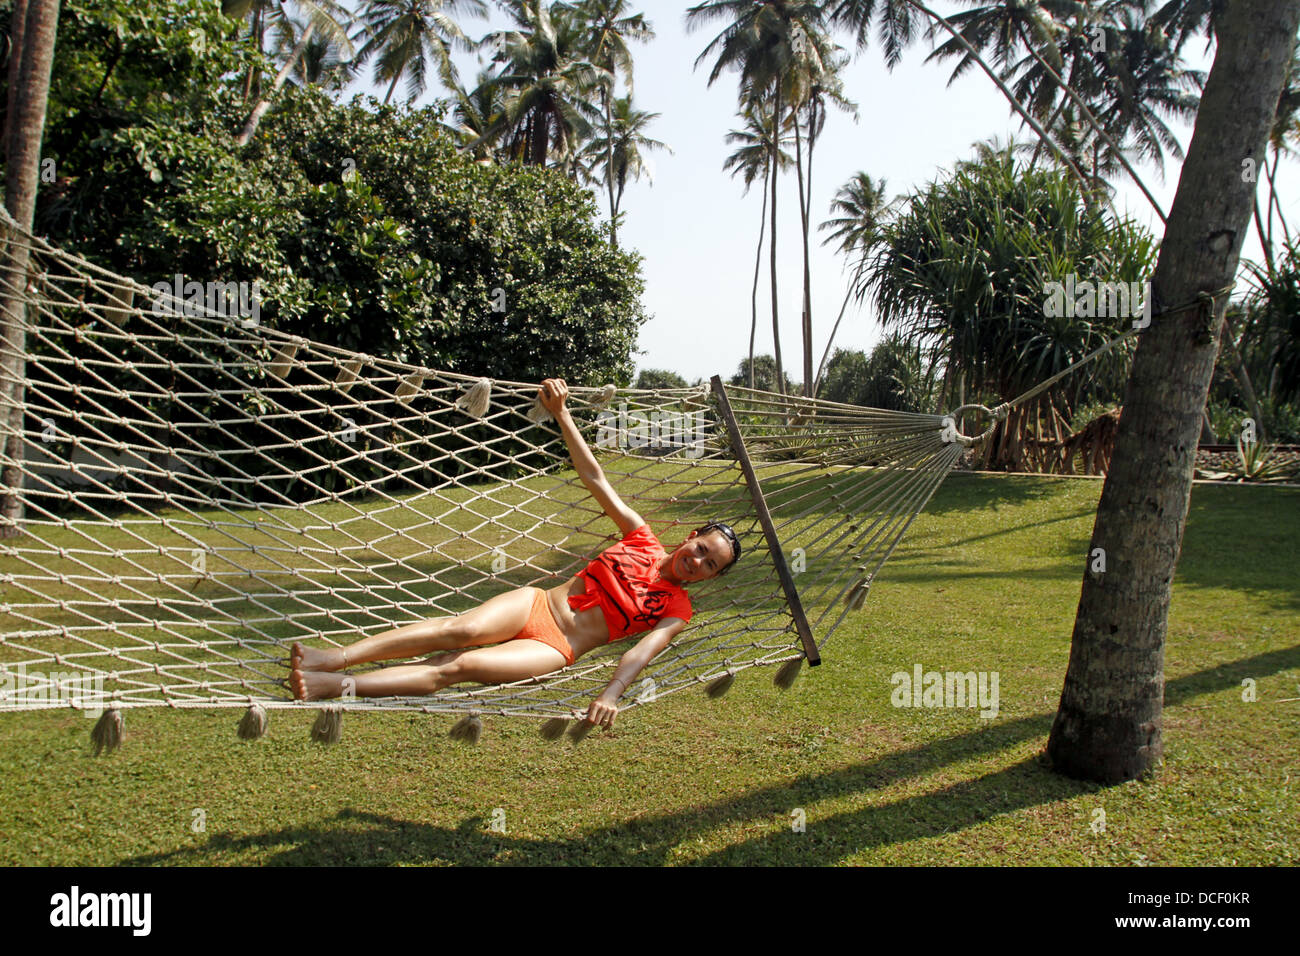 WOMAN ON ROPE HAMMOCK BENTOTA BEACH SRI LANKA 14 March 2013 - Stock Image